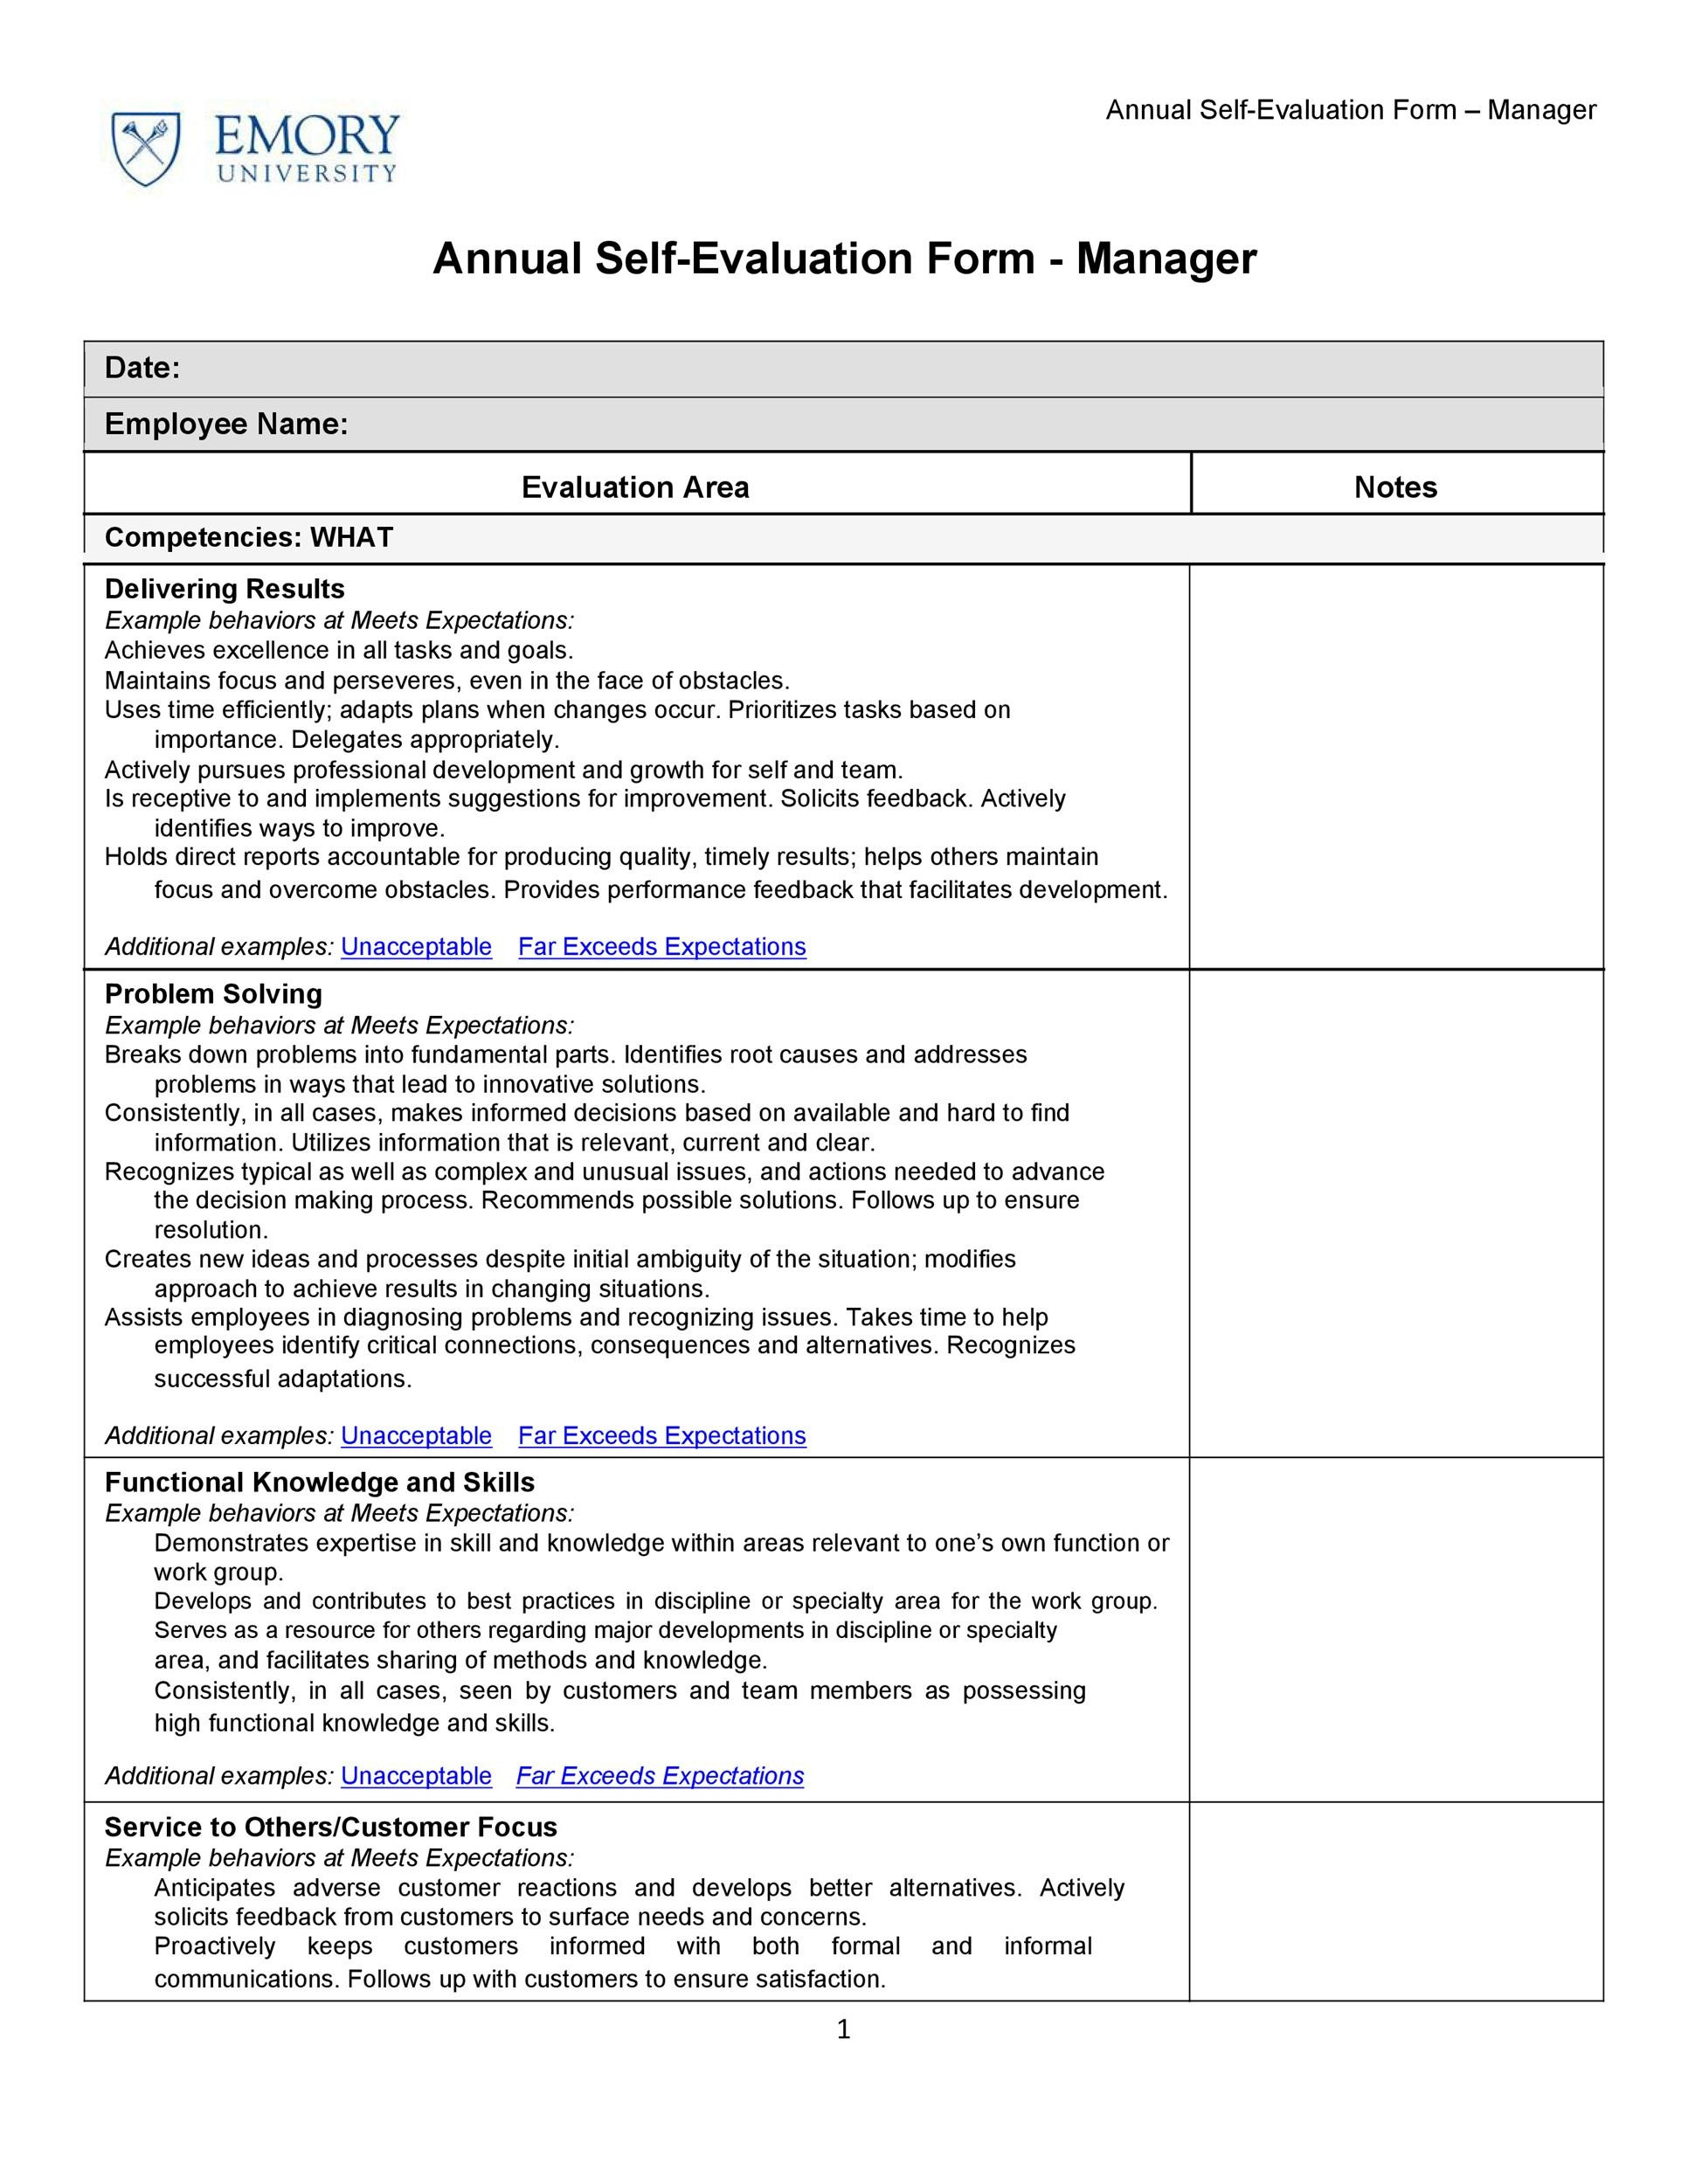 Employee Evaluation form Template